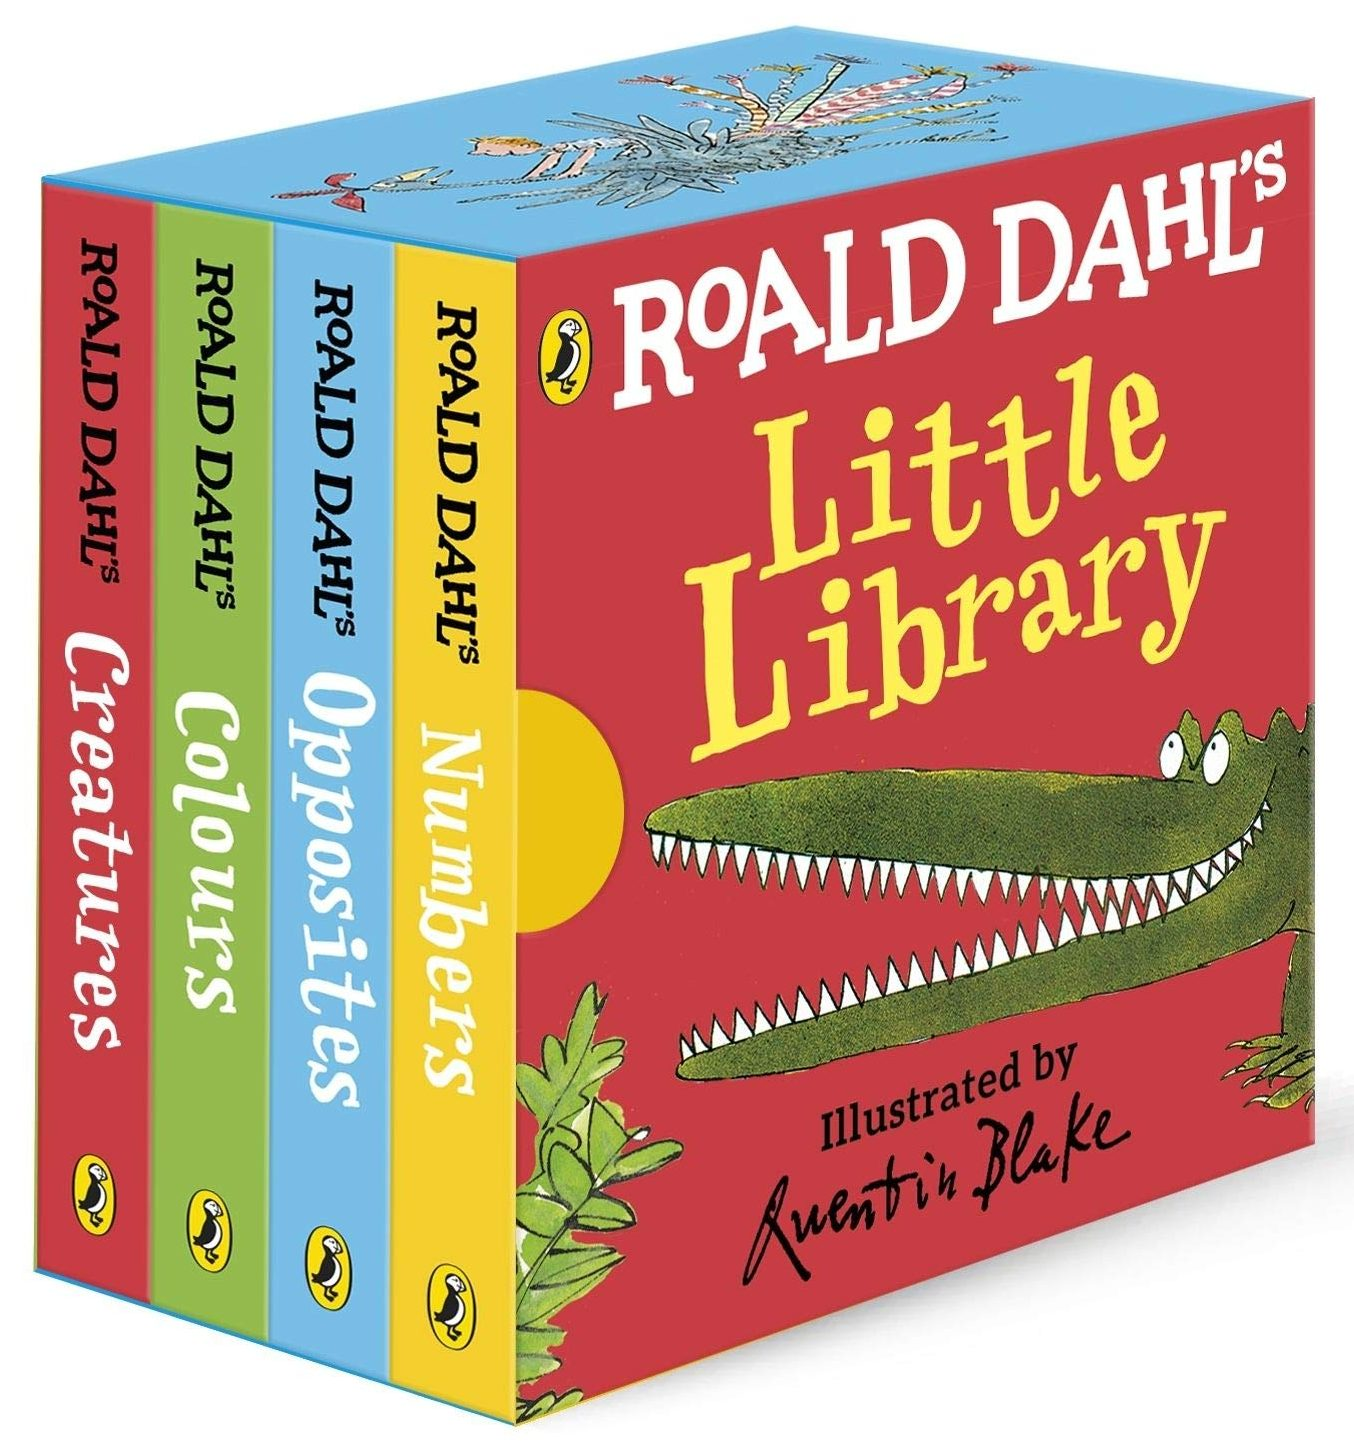 Roald Dahls Little Library books for 3 year old kids